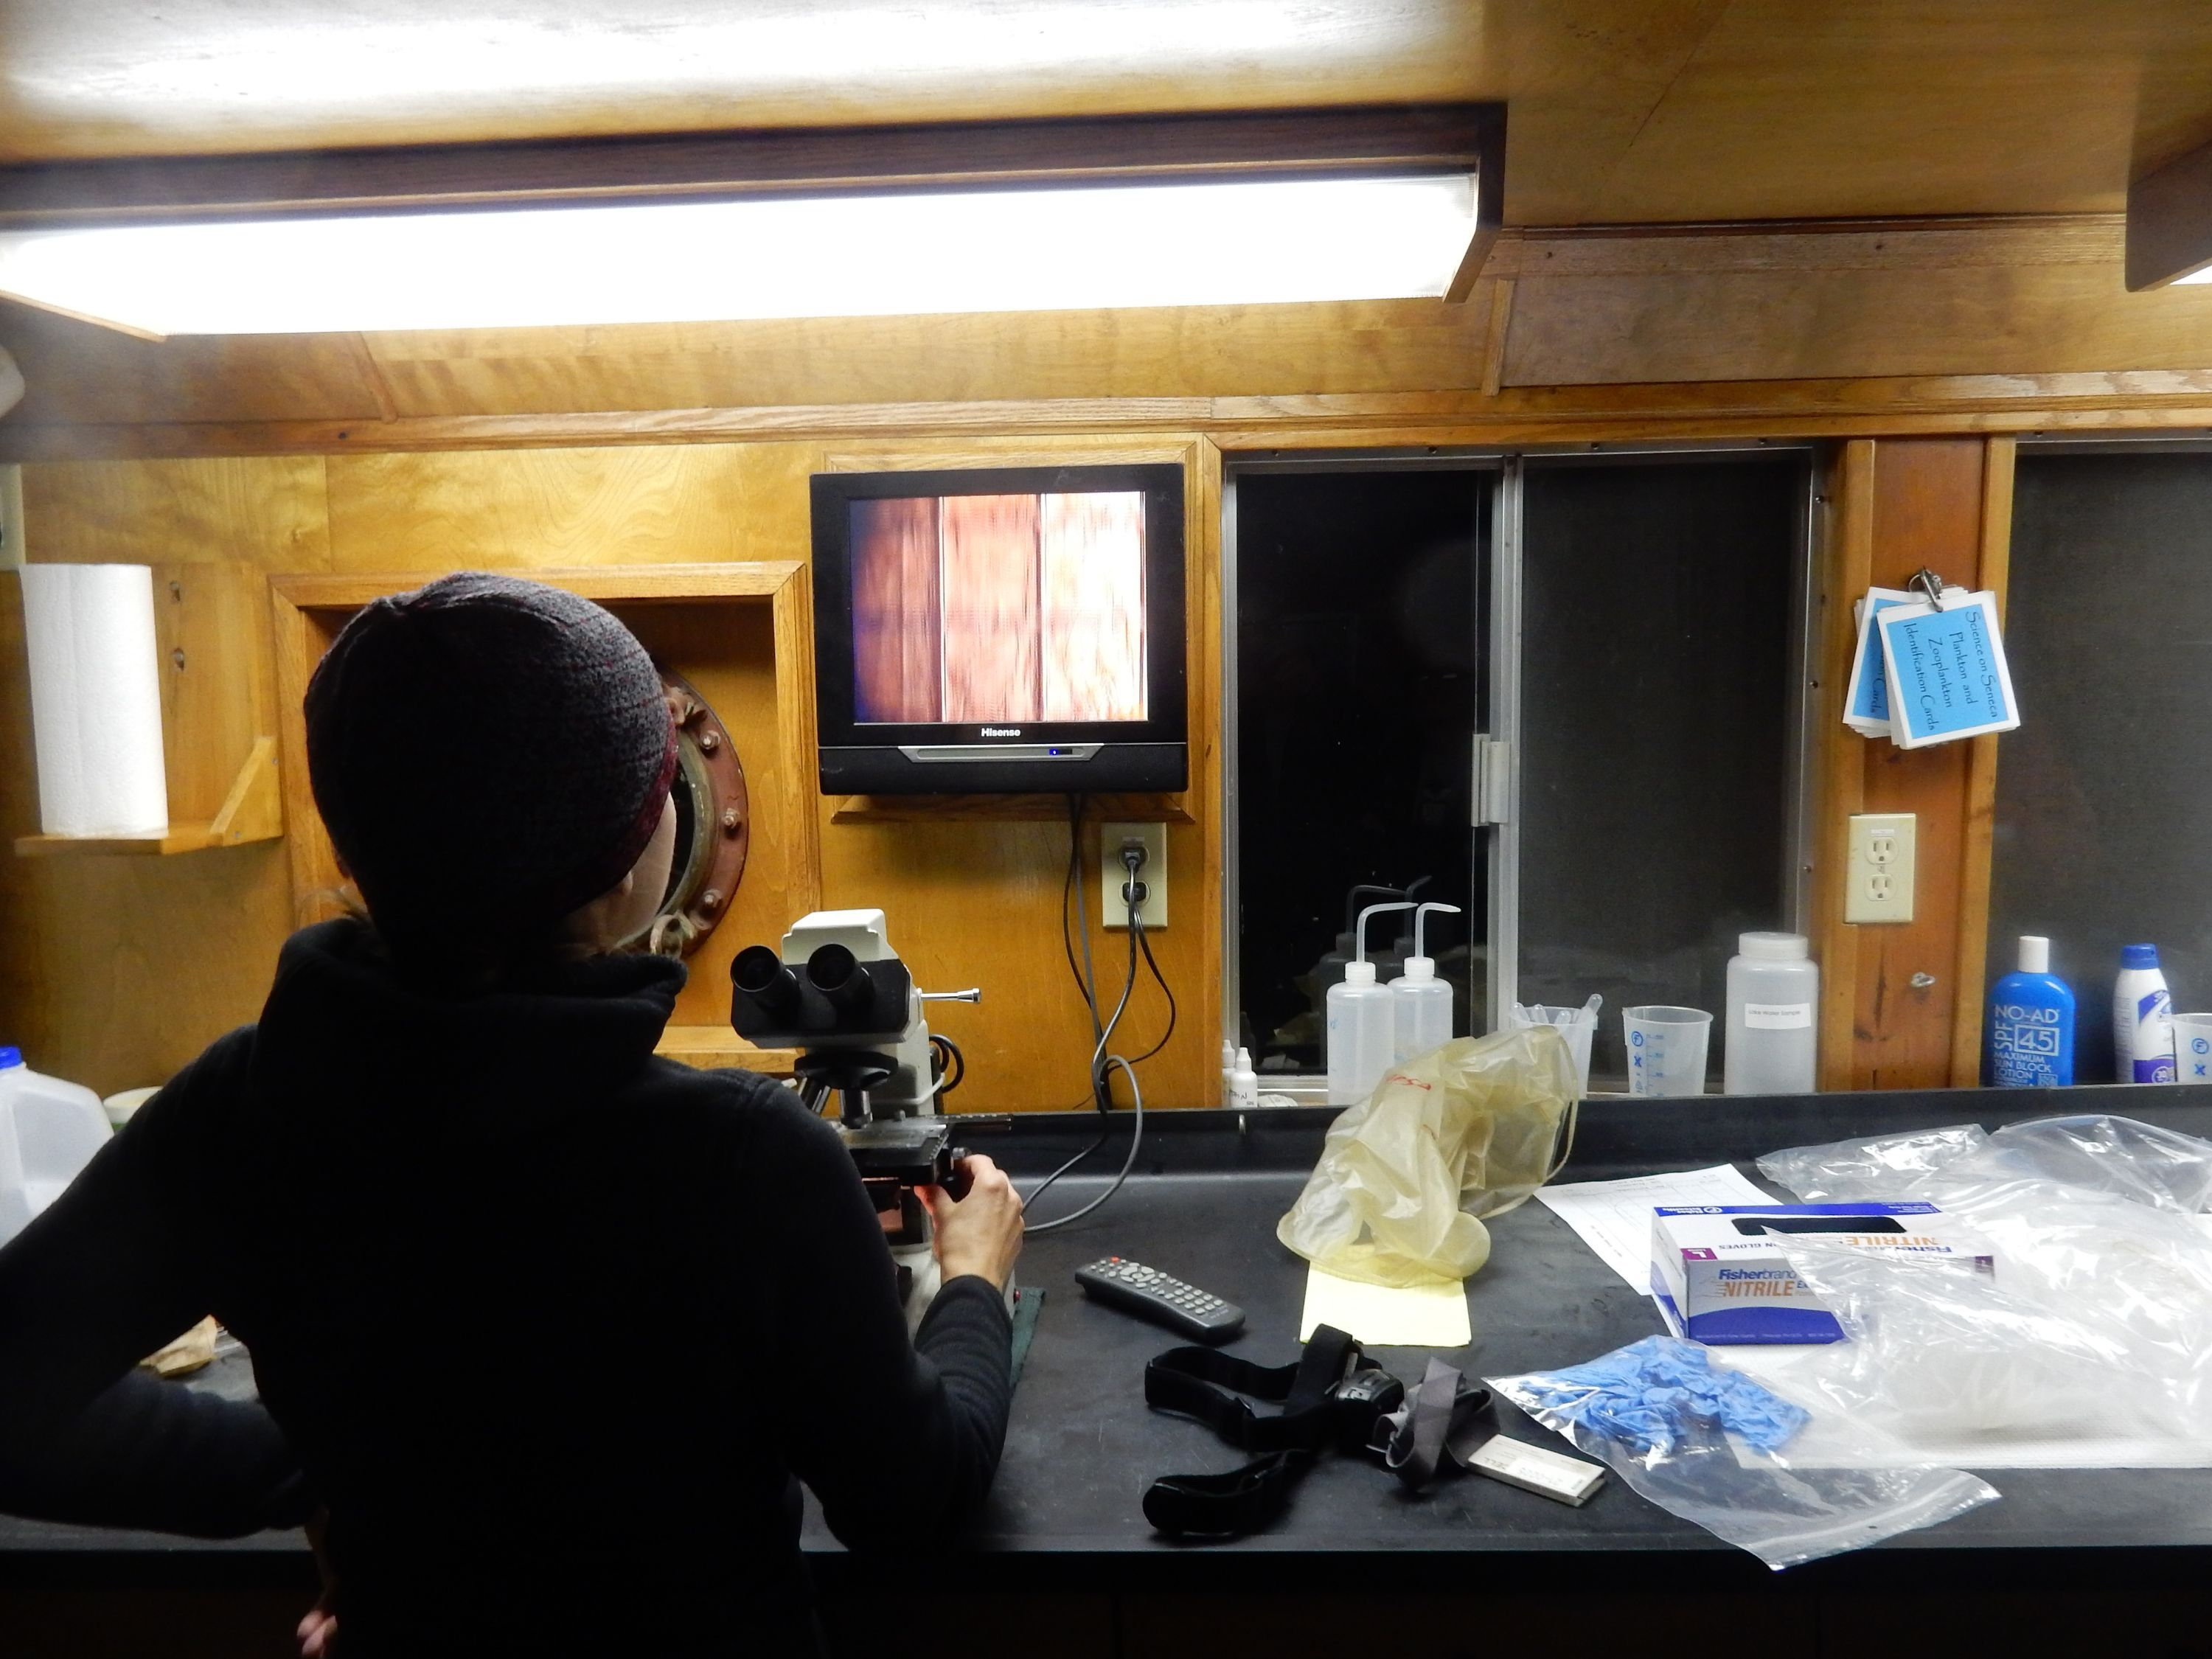 A woman dressed in black sits in front of a microscope.